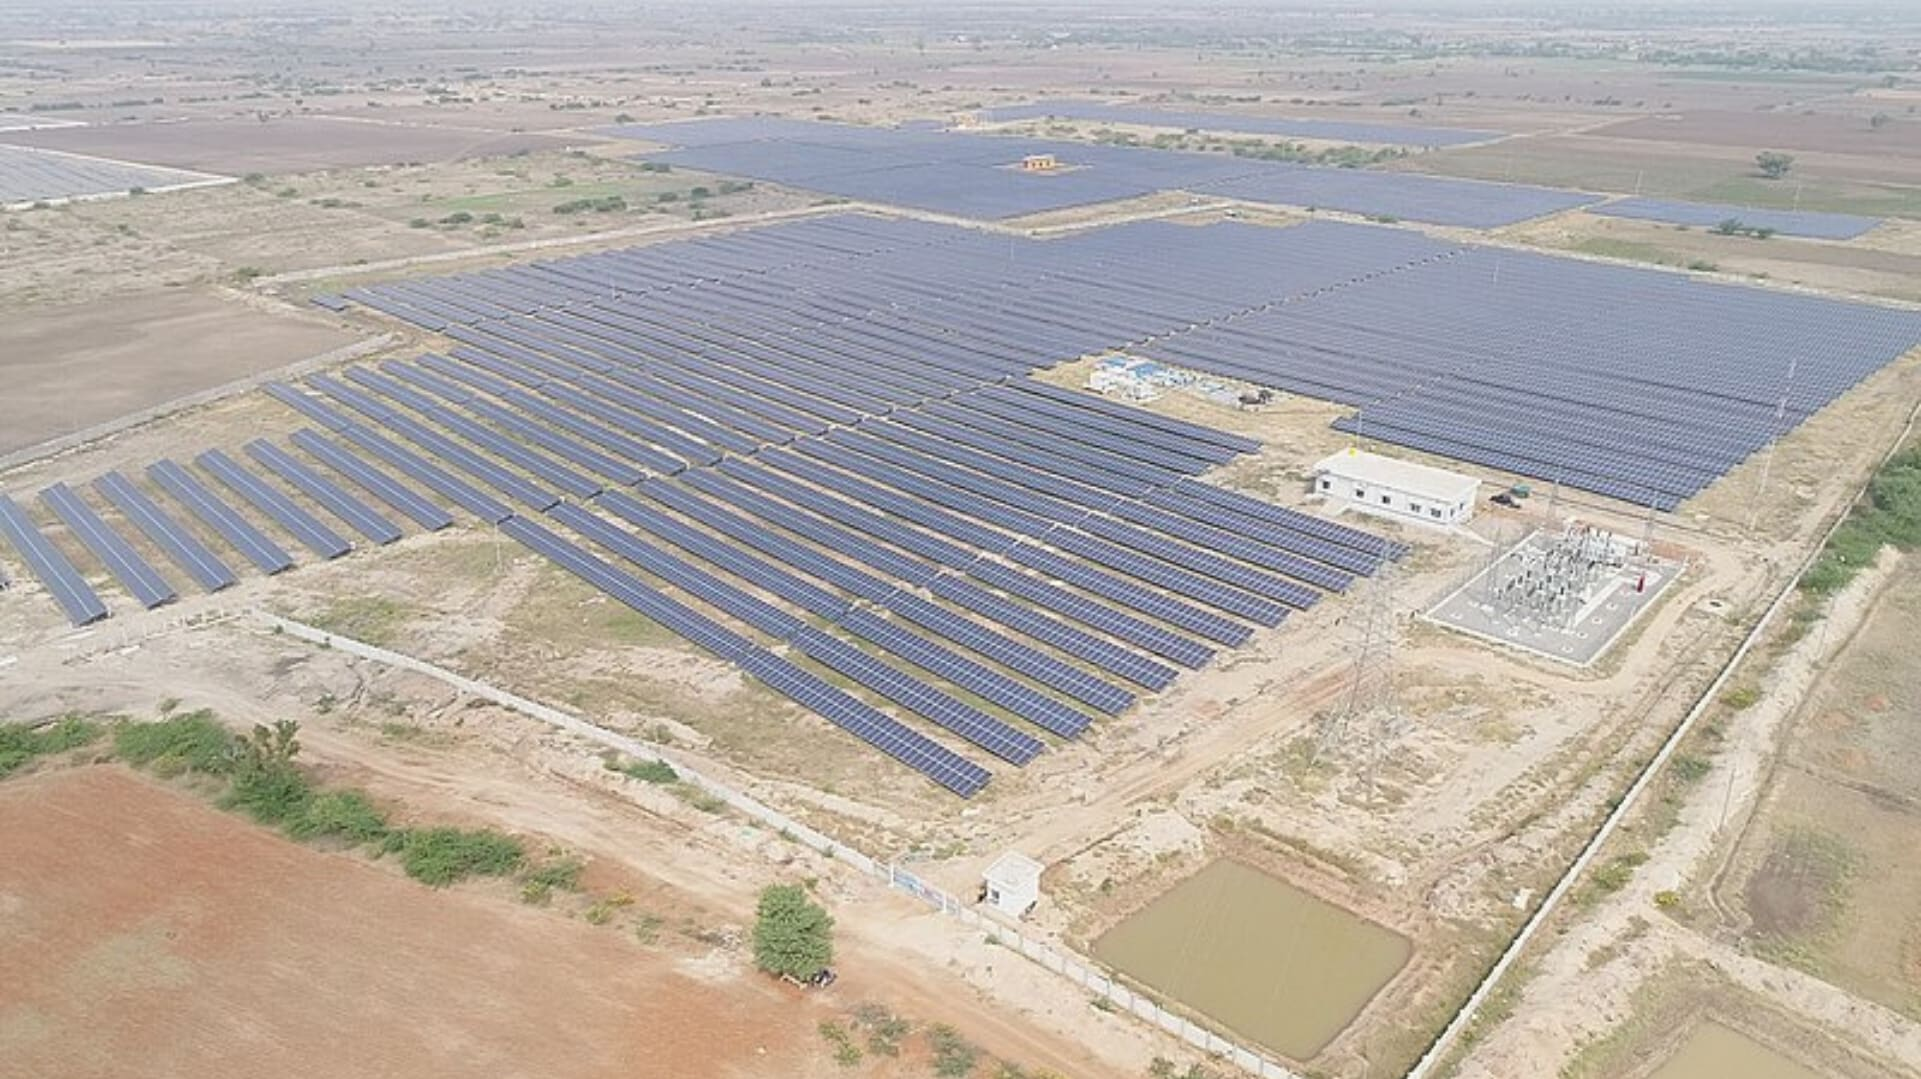 With no waste disposal plan, India's solar power programme may lead to loss of biodiversity